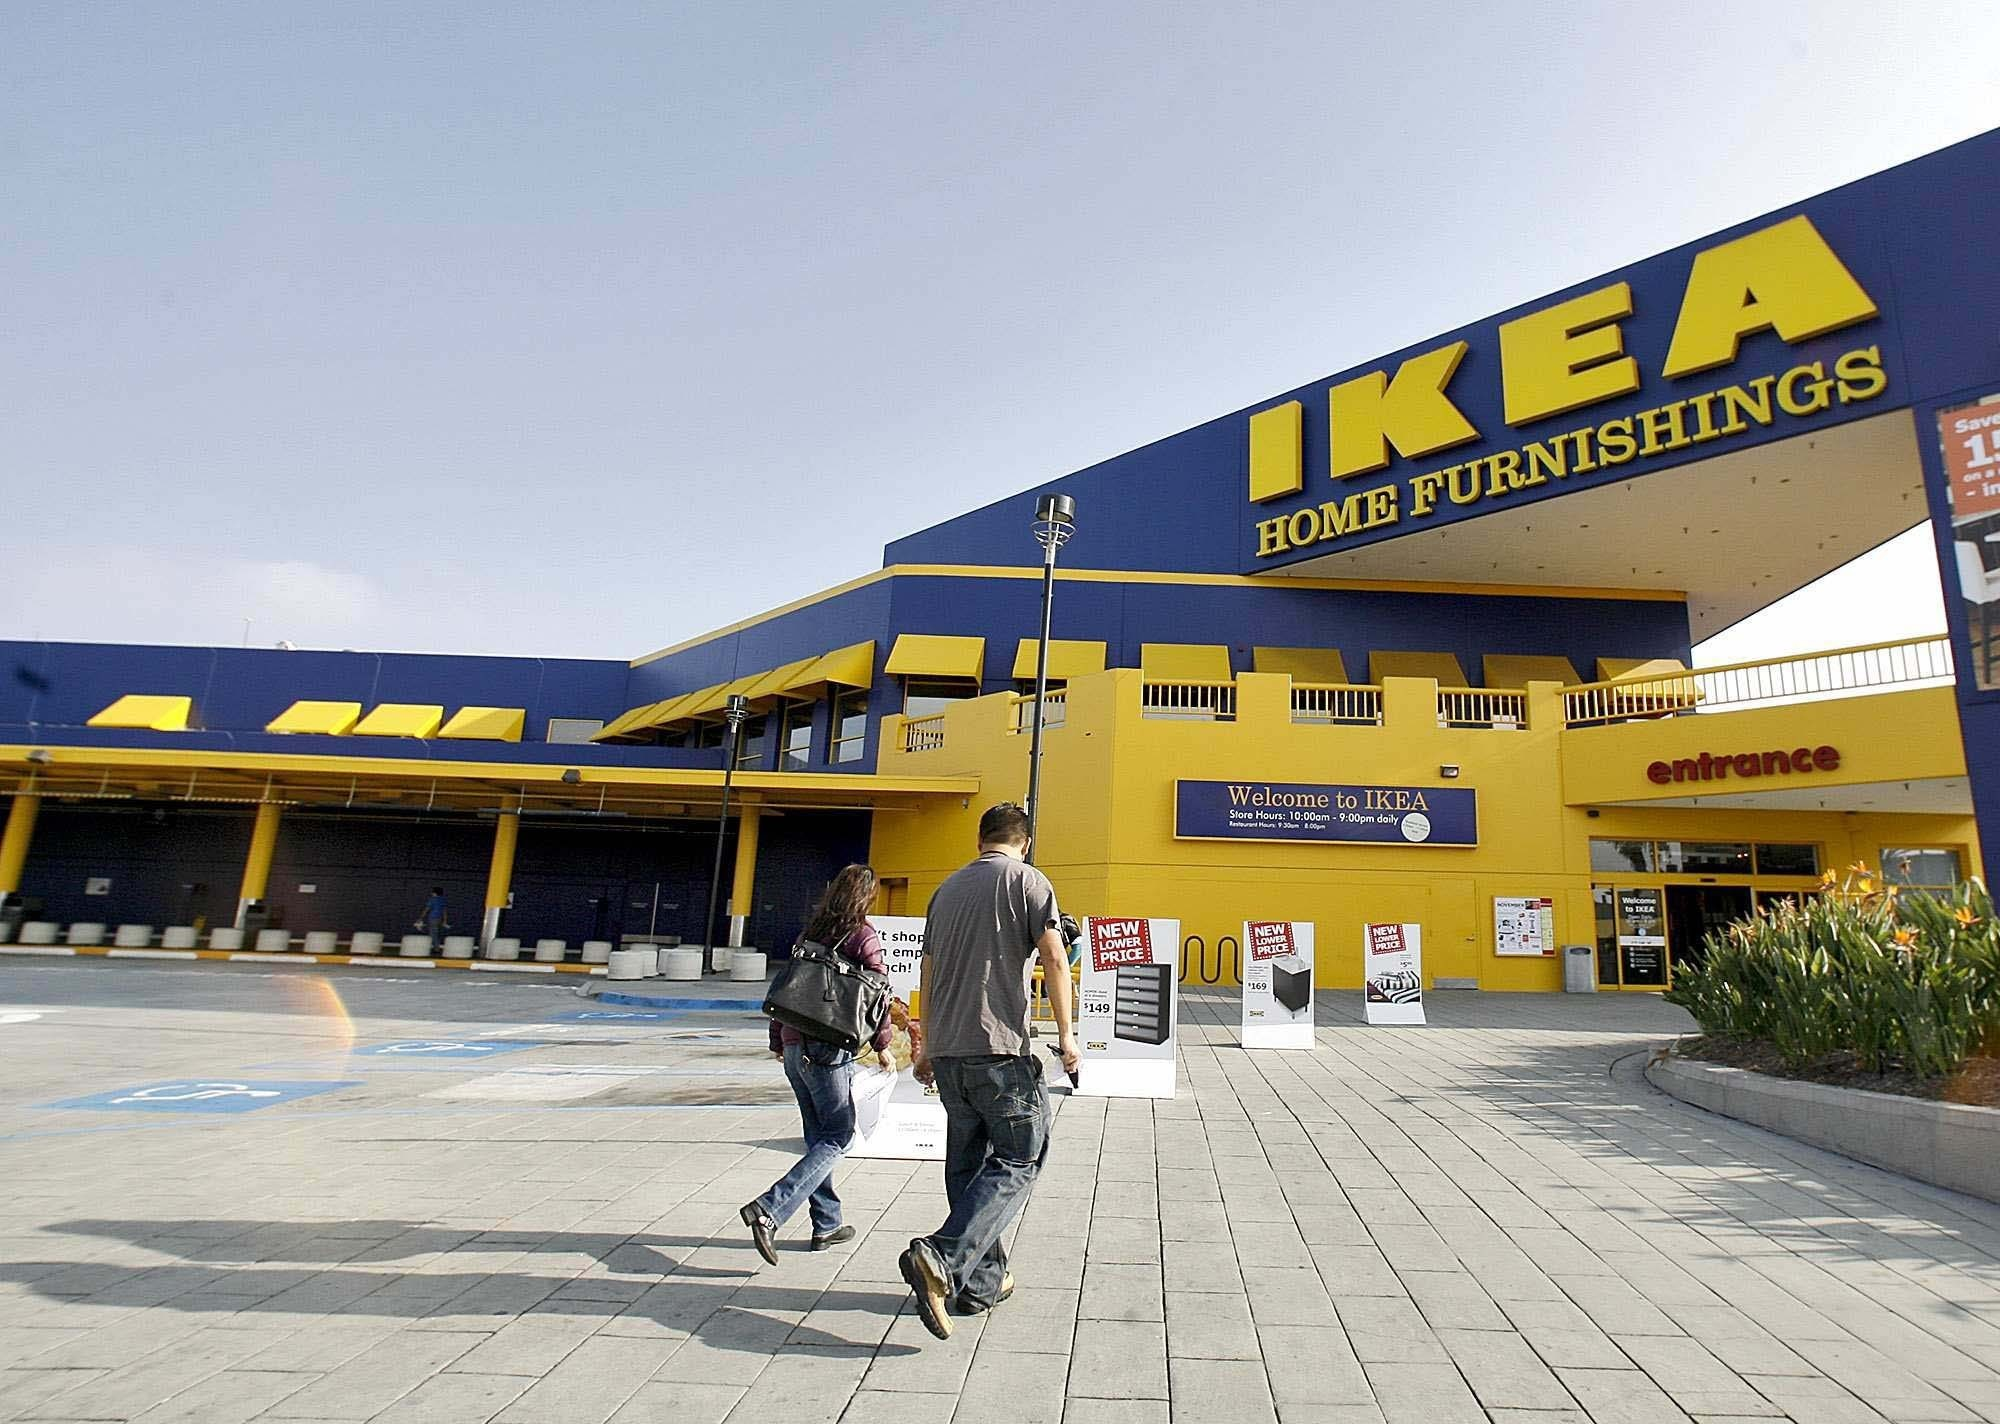 ikea museum set to open in sweden in 2015 la times. Black Bedroom Furniture Sets. Home Design Ideas